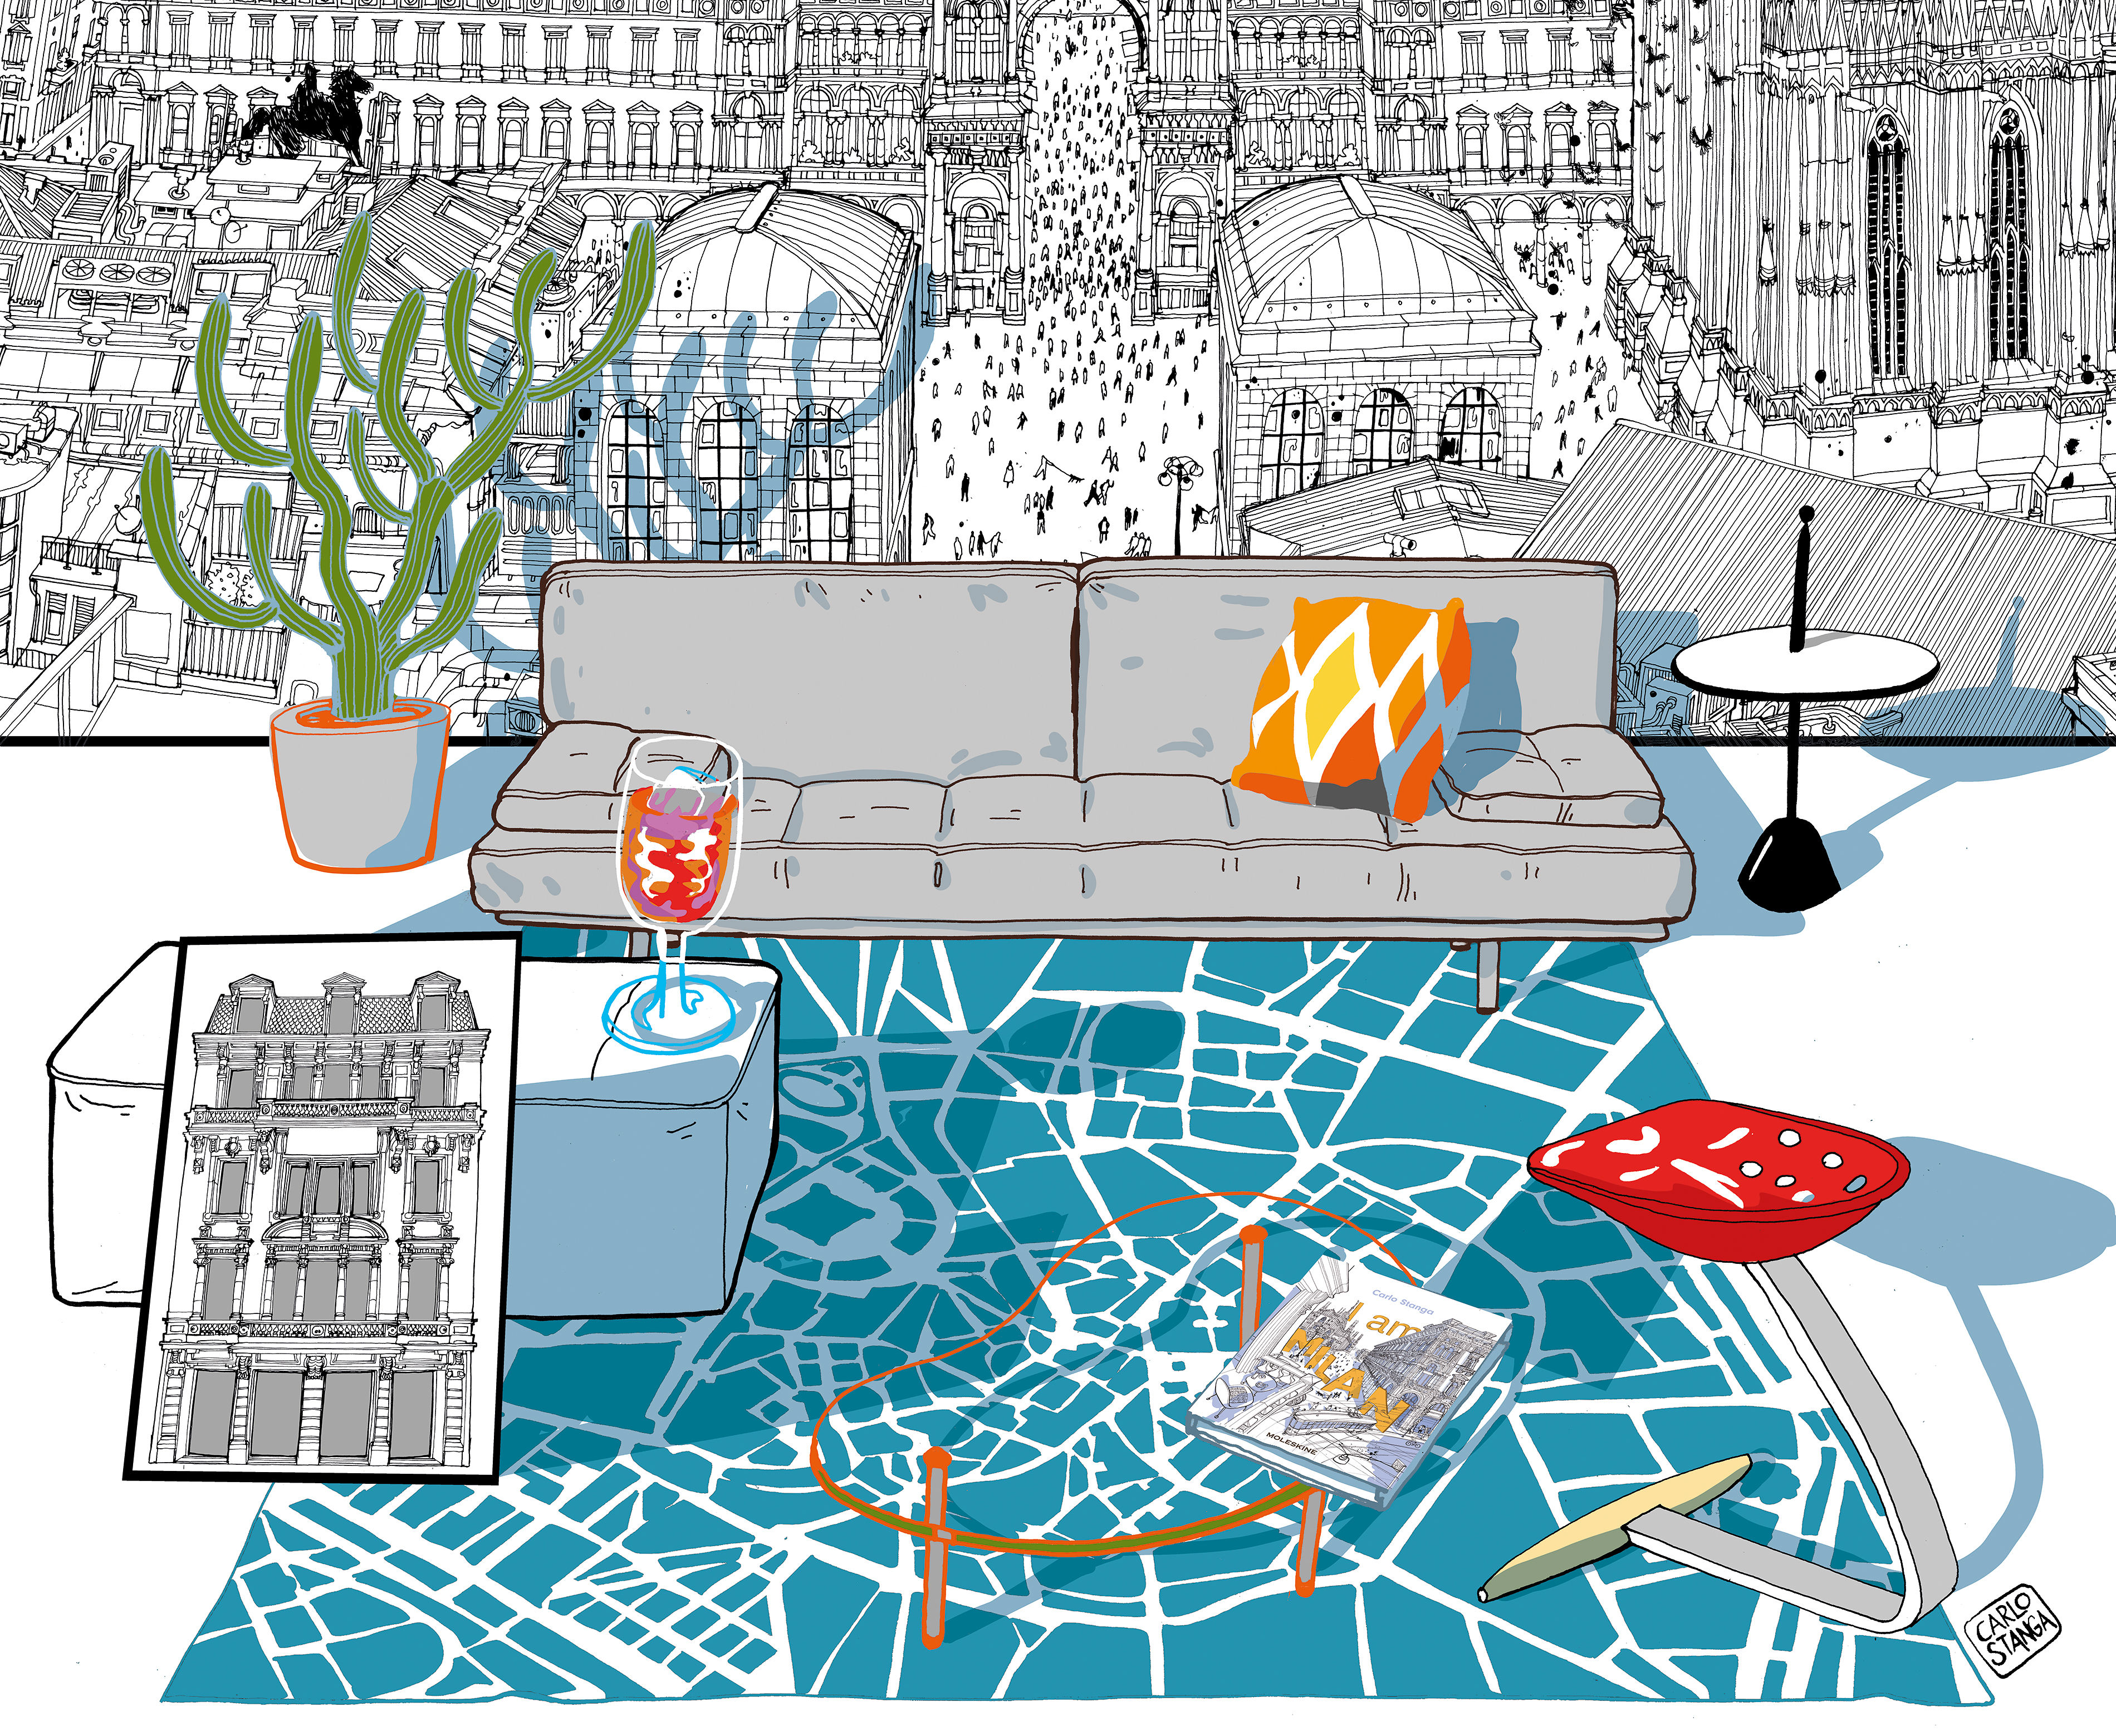 INTERNO MILANESE ILLUSTRATION